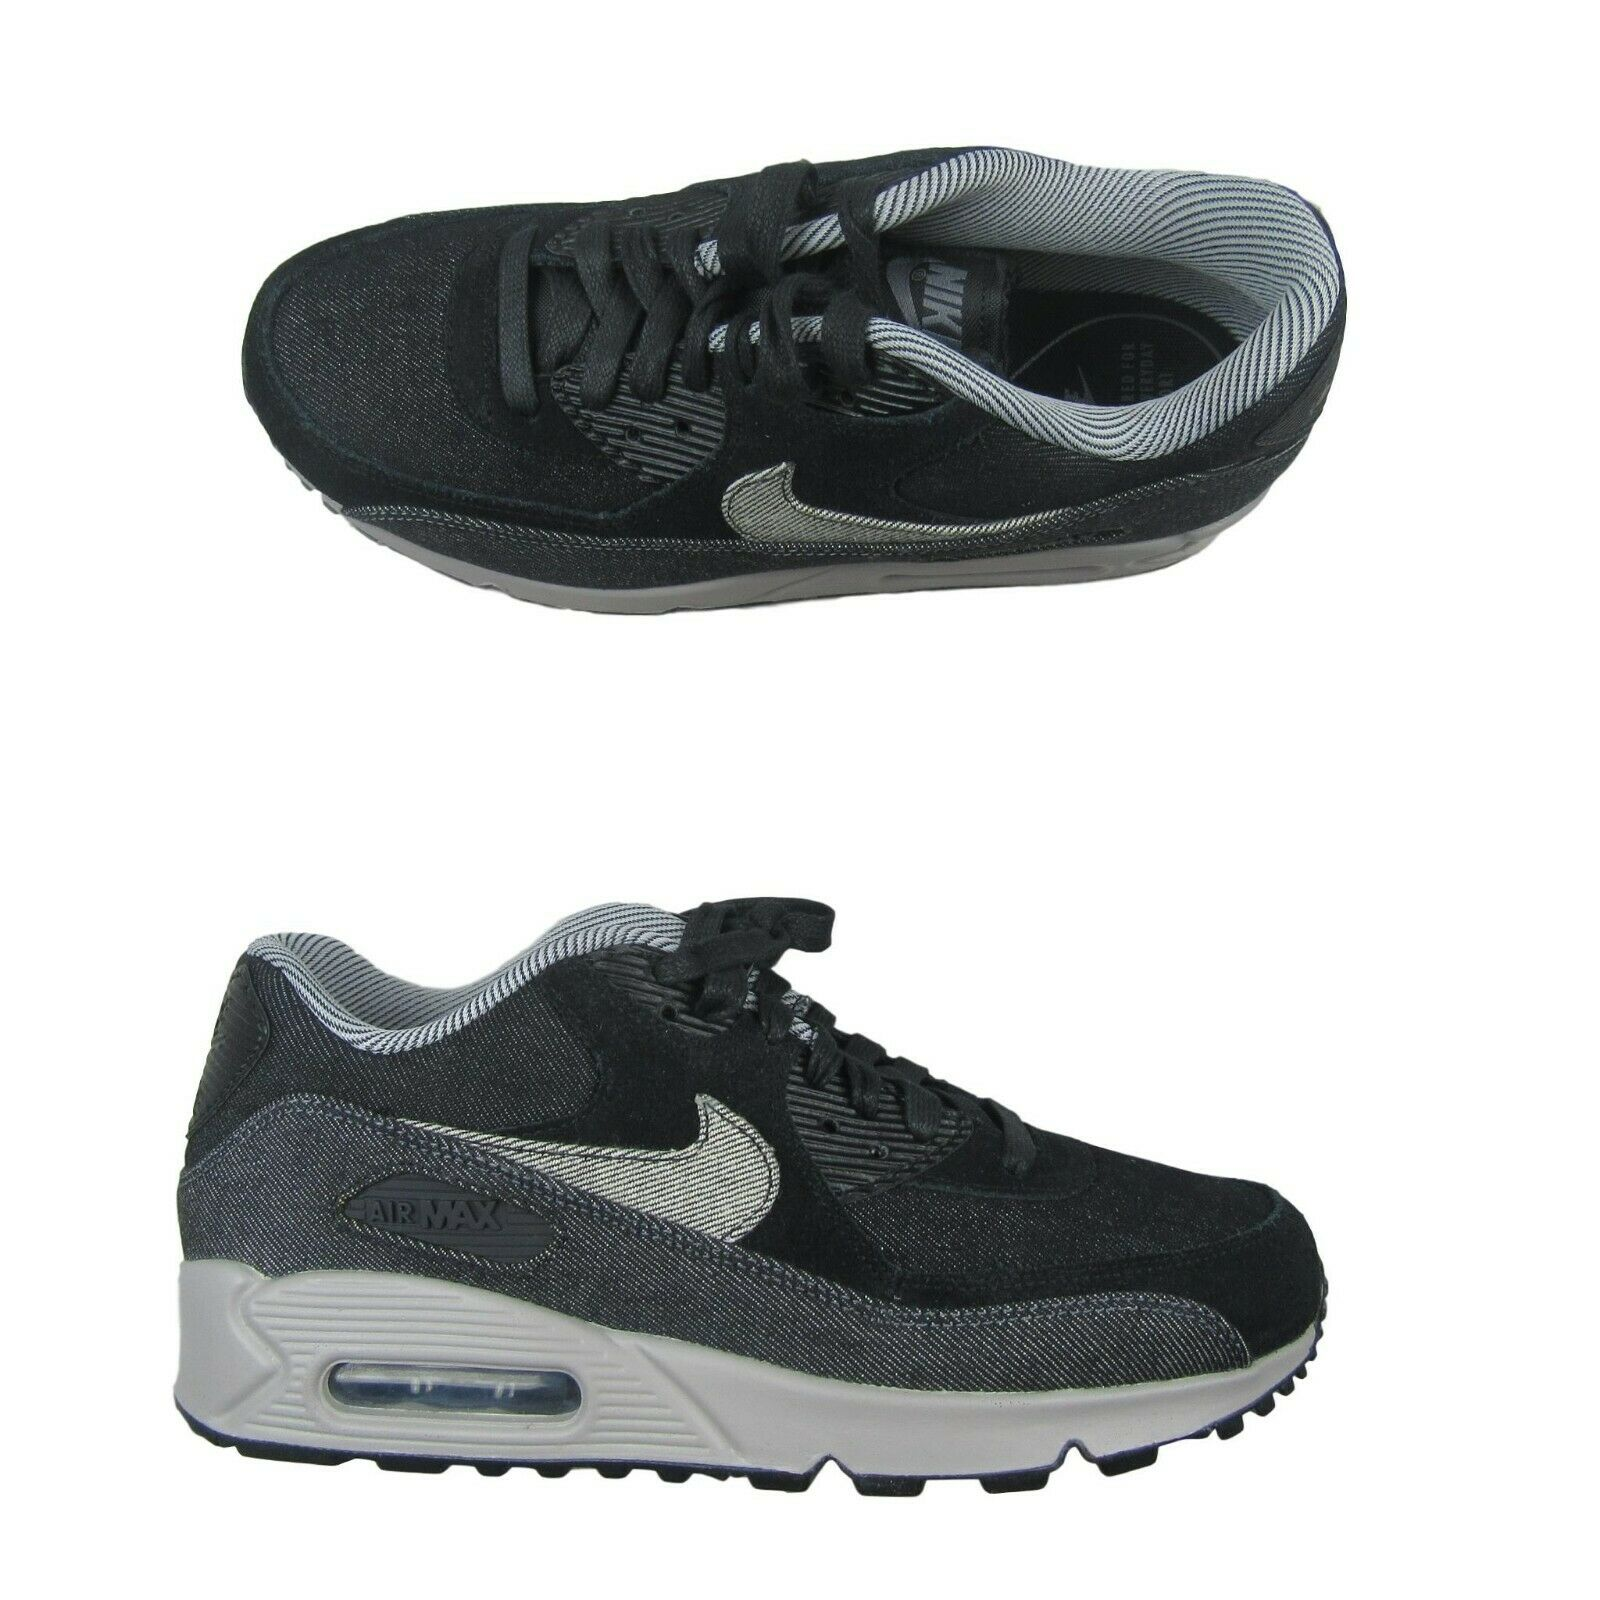 newest da3fc 74819 nike-air-max-90-se-running-shoes-womens-